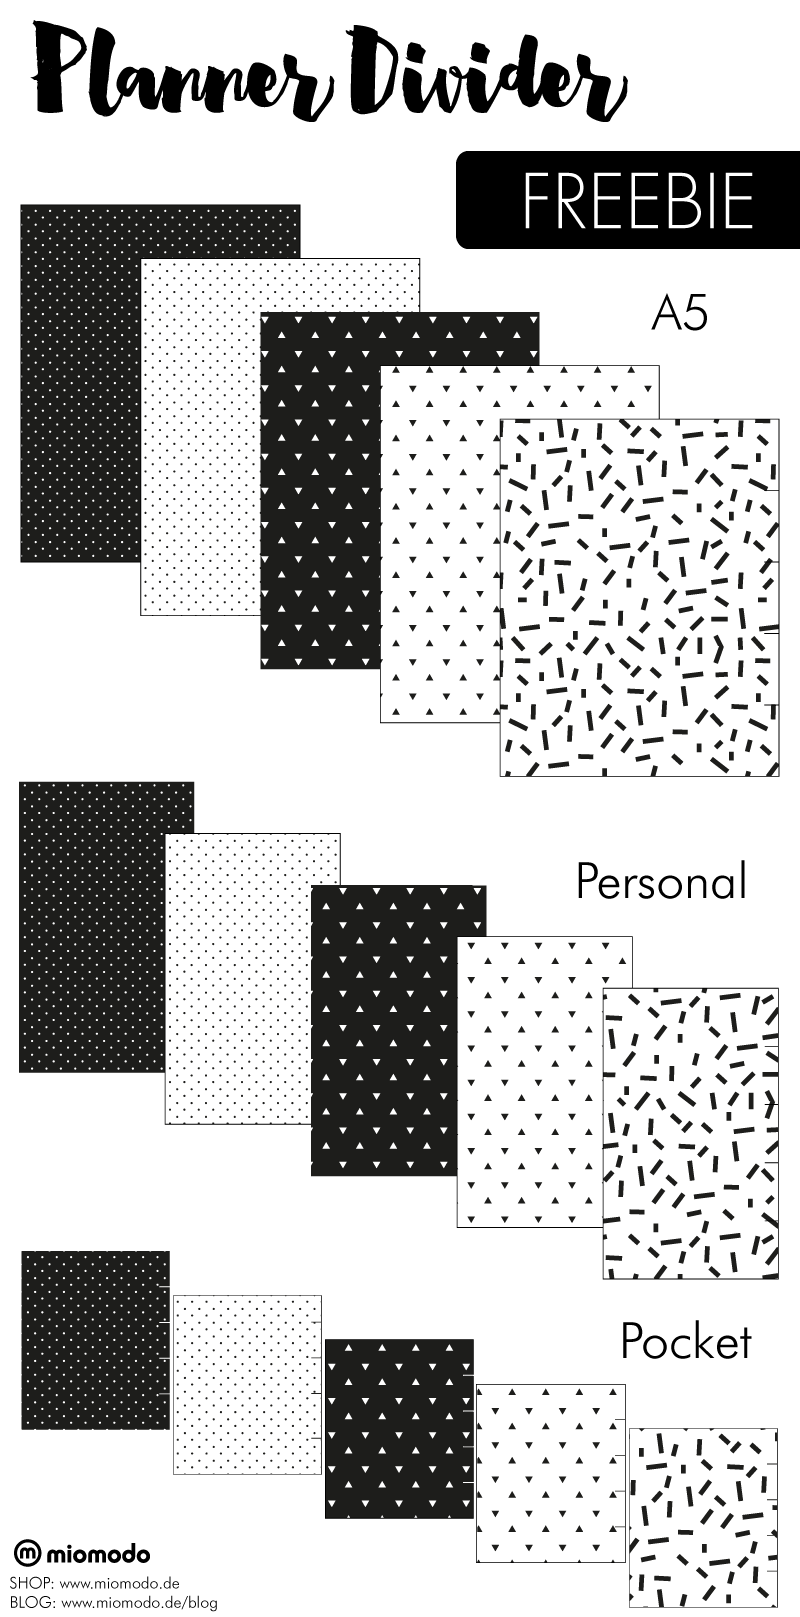 planner divider freebie zum kostenlosen download. Black Bedroom Furniture Sets. Home Design Ideas